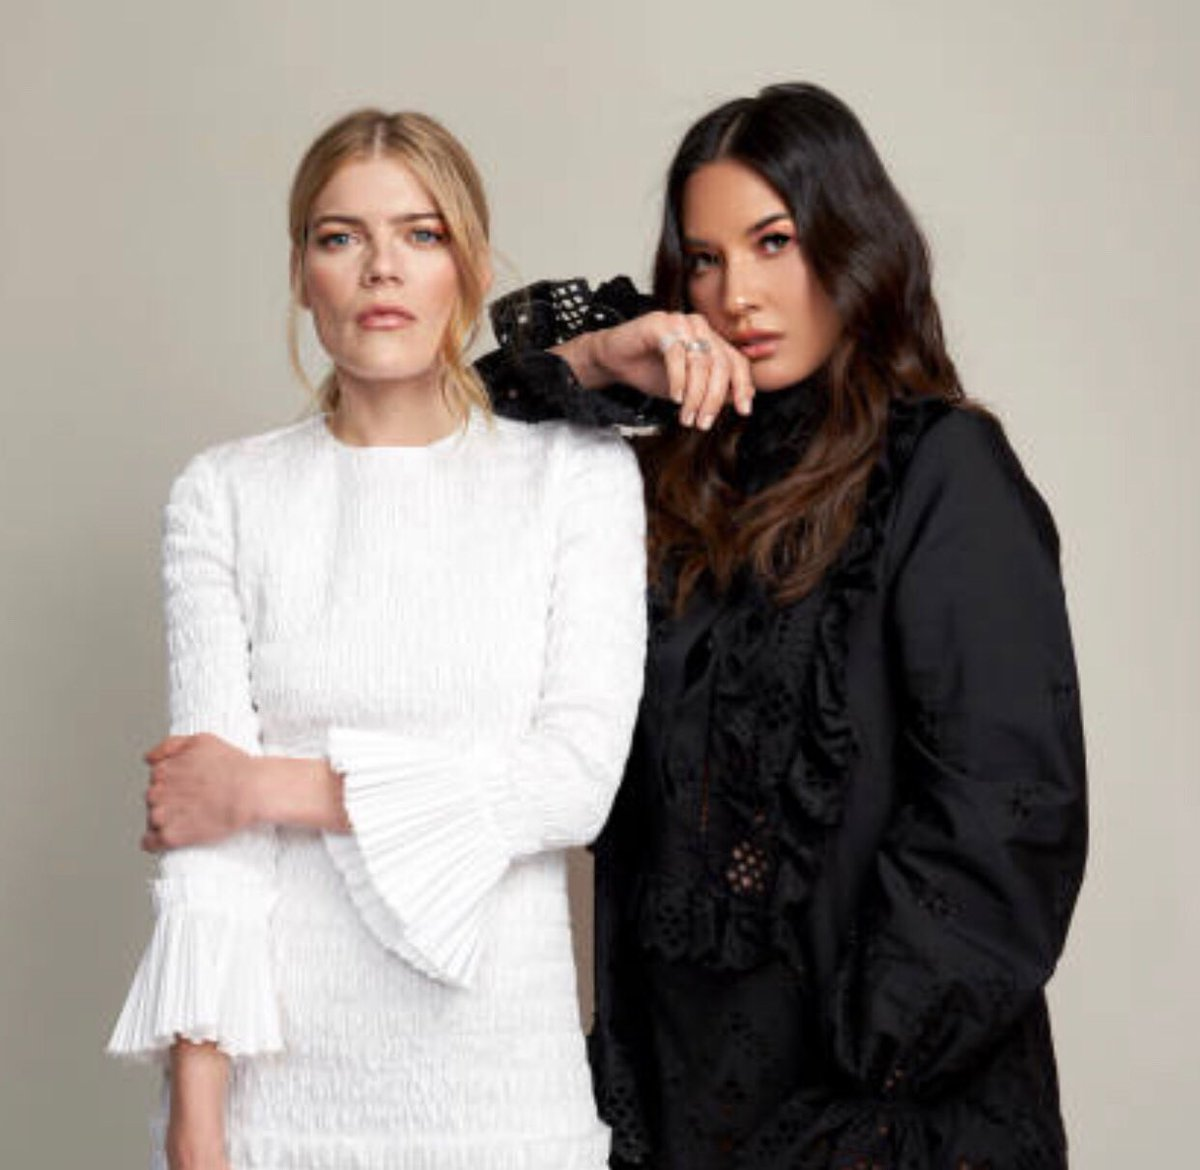 #TheRook on @STARZ premieres summer 2019. Things will get weird. #emmagreenwell https://t.co/U1ND2aWNgC